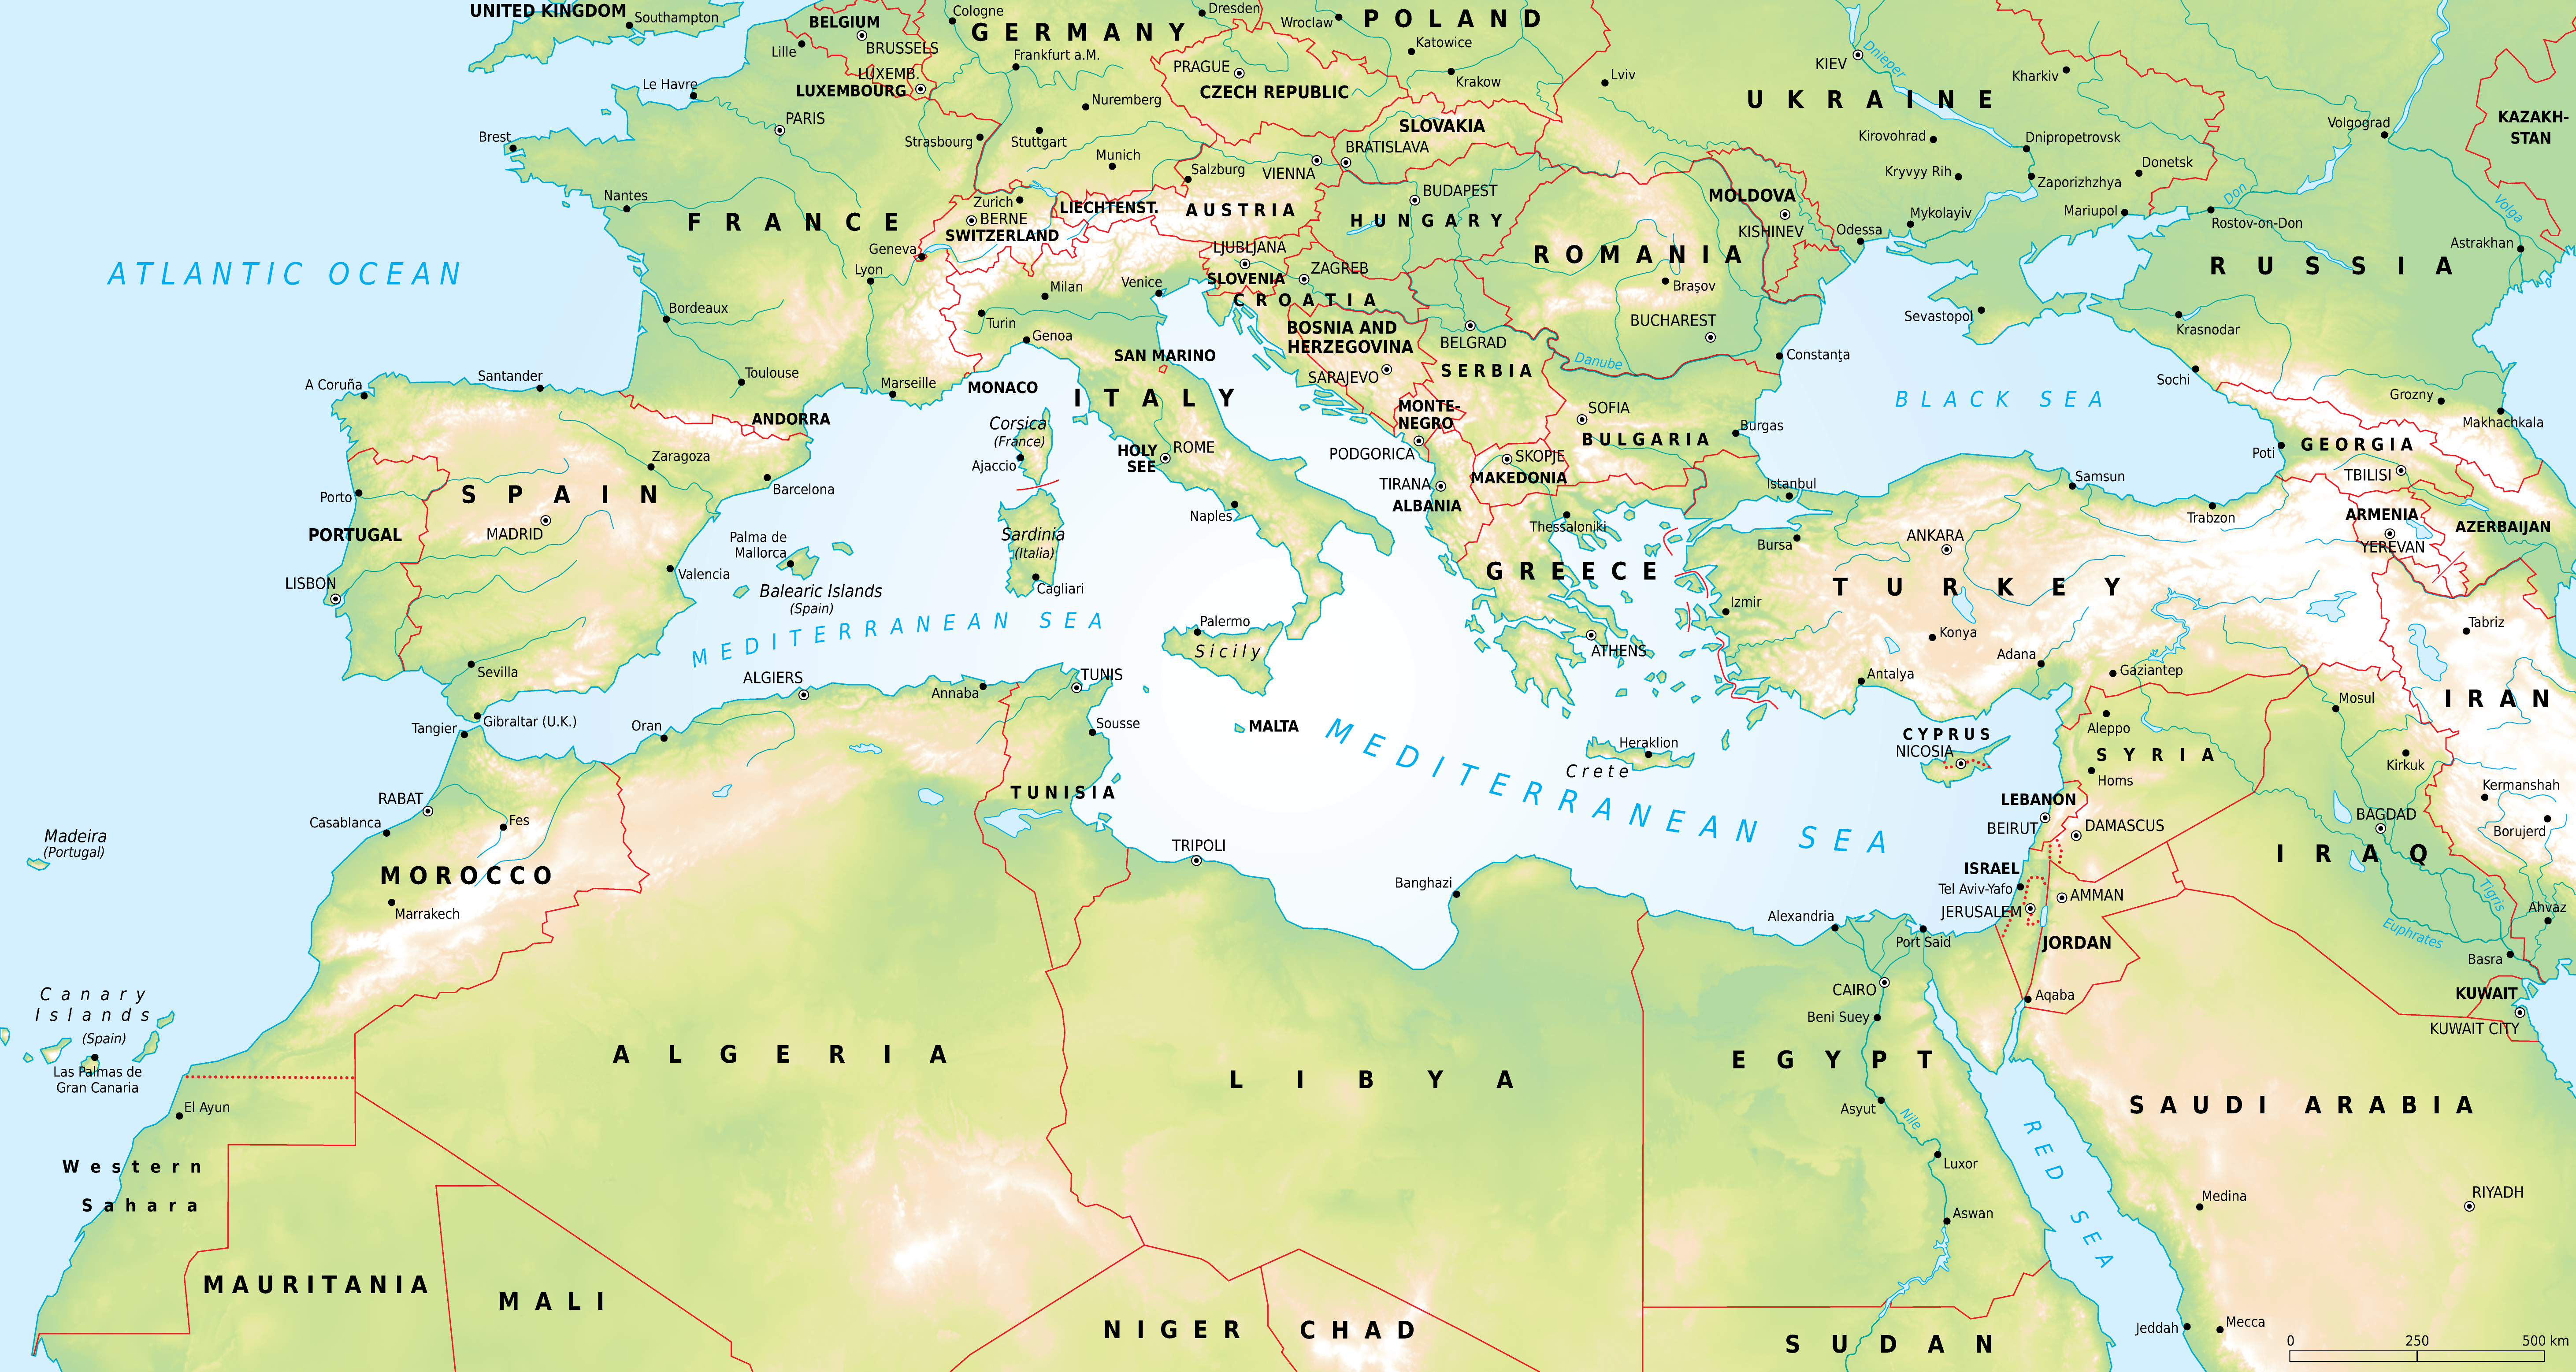 ... map ancient mesopotamia mediterranean sea map outline africa map with